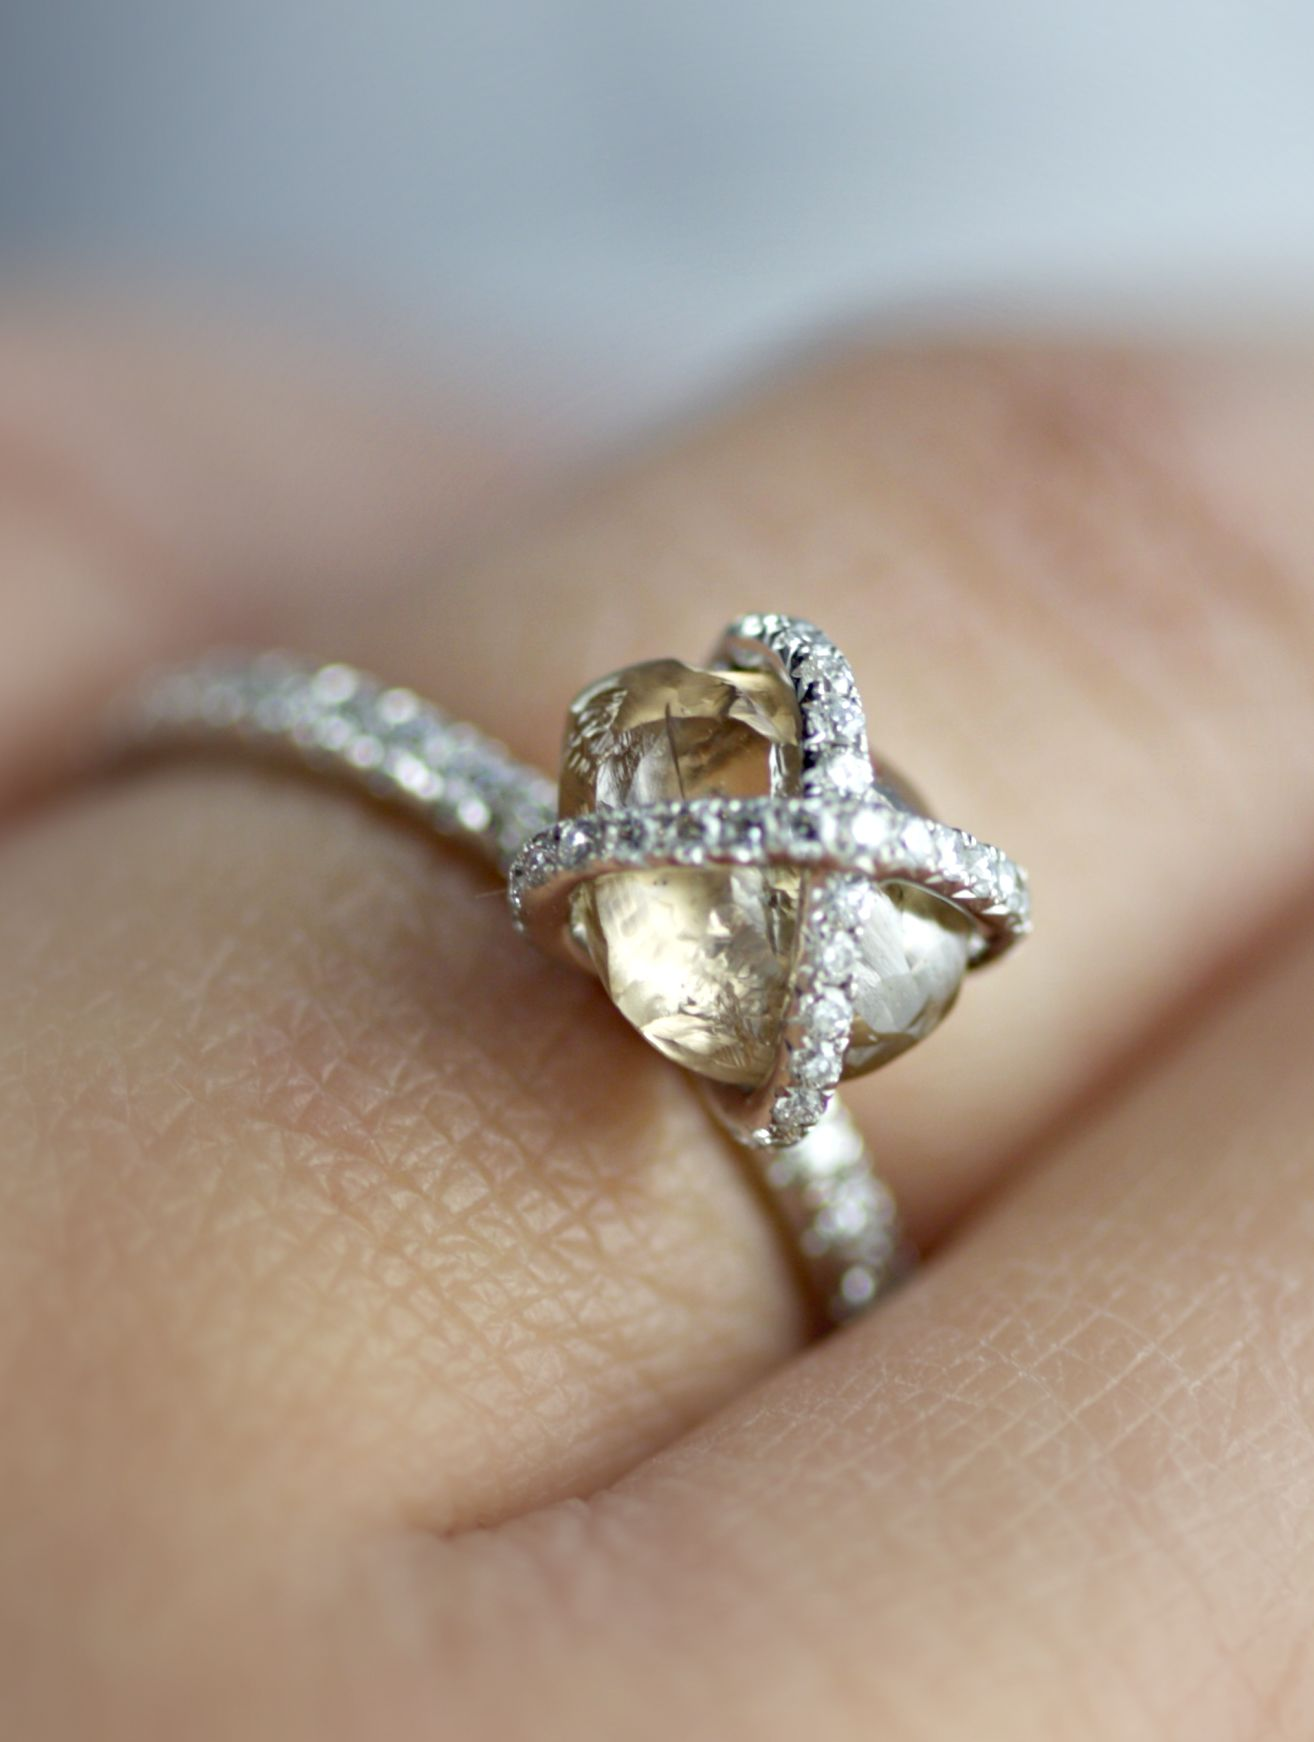 2 28ct Embrace natural rough diamond engagement ring with micro